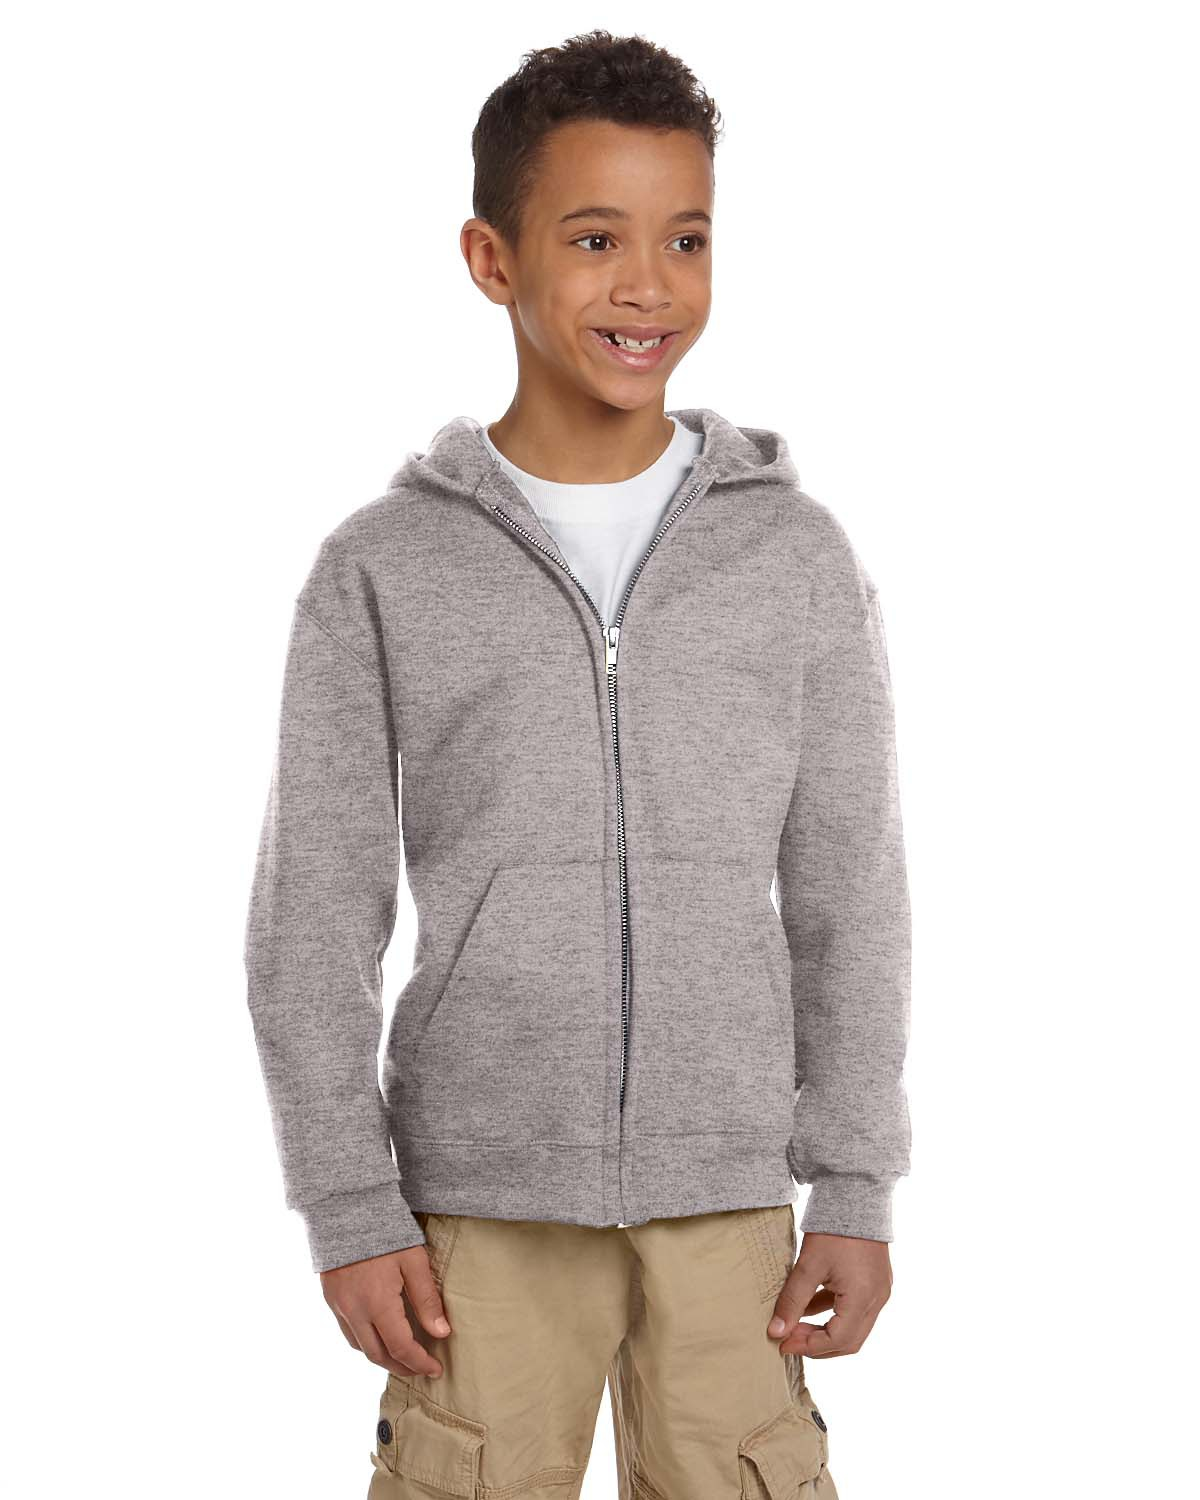 Youth Eco 9 oz. 50/50 Full-Zip Hood